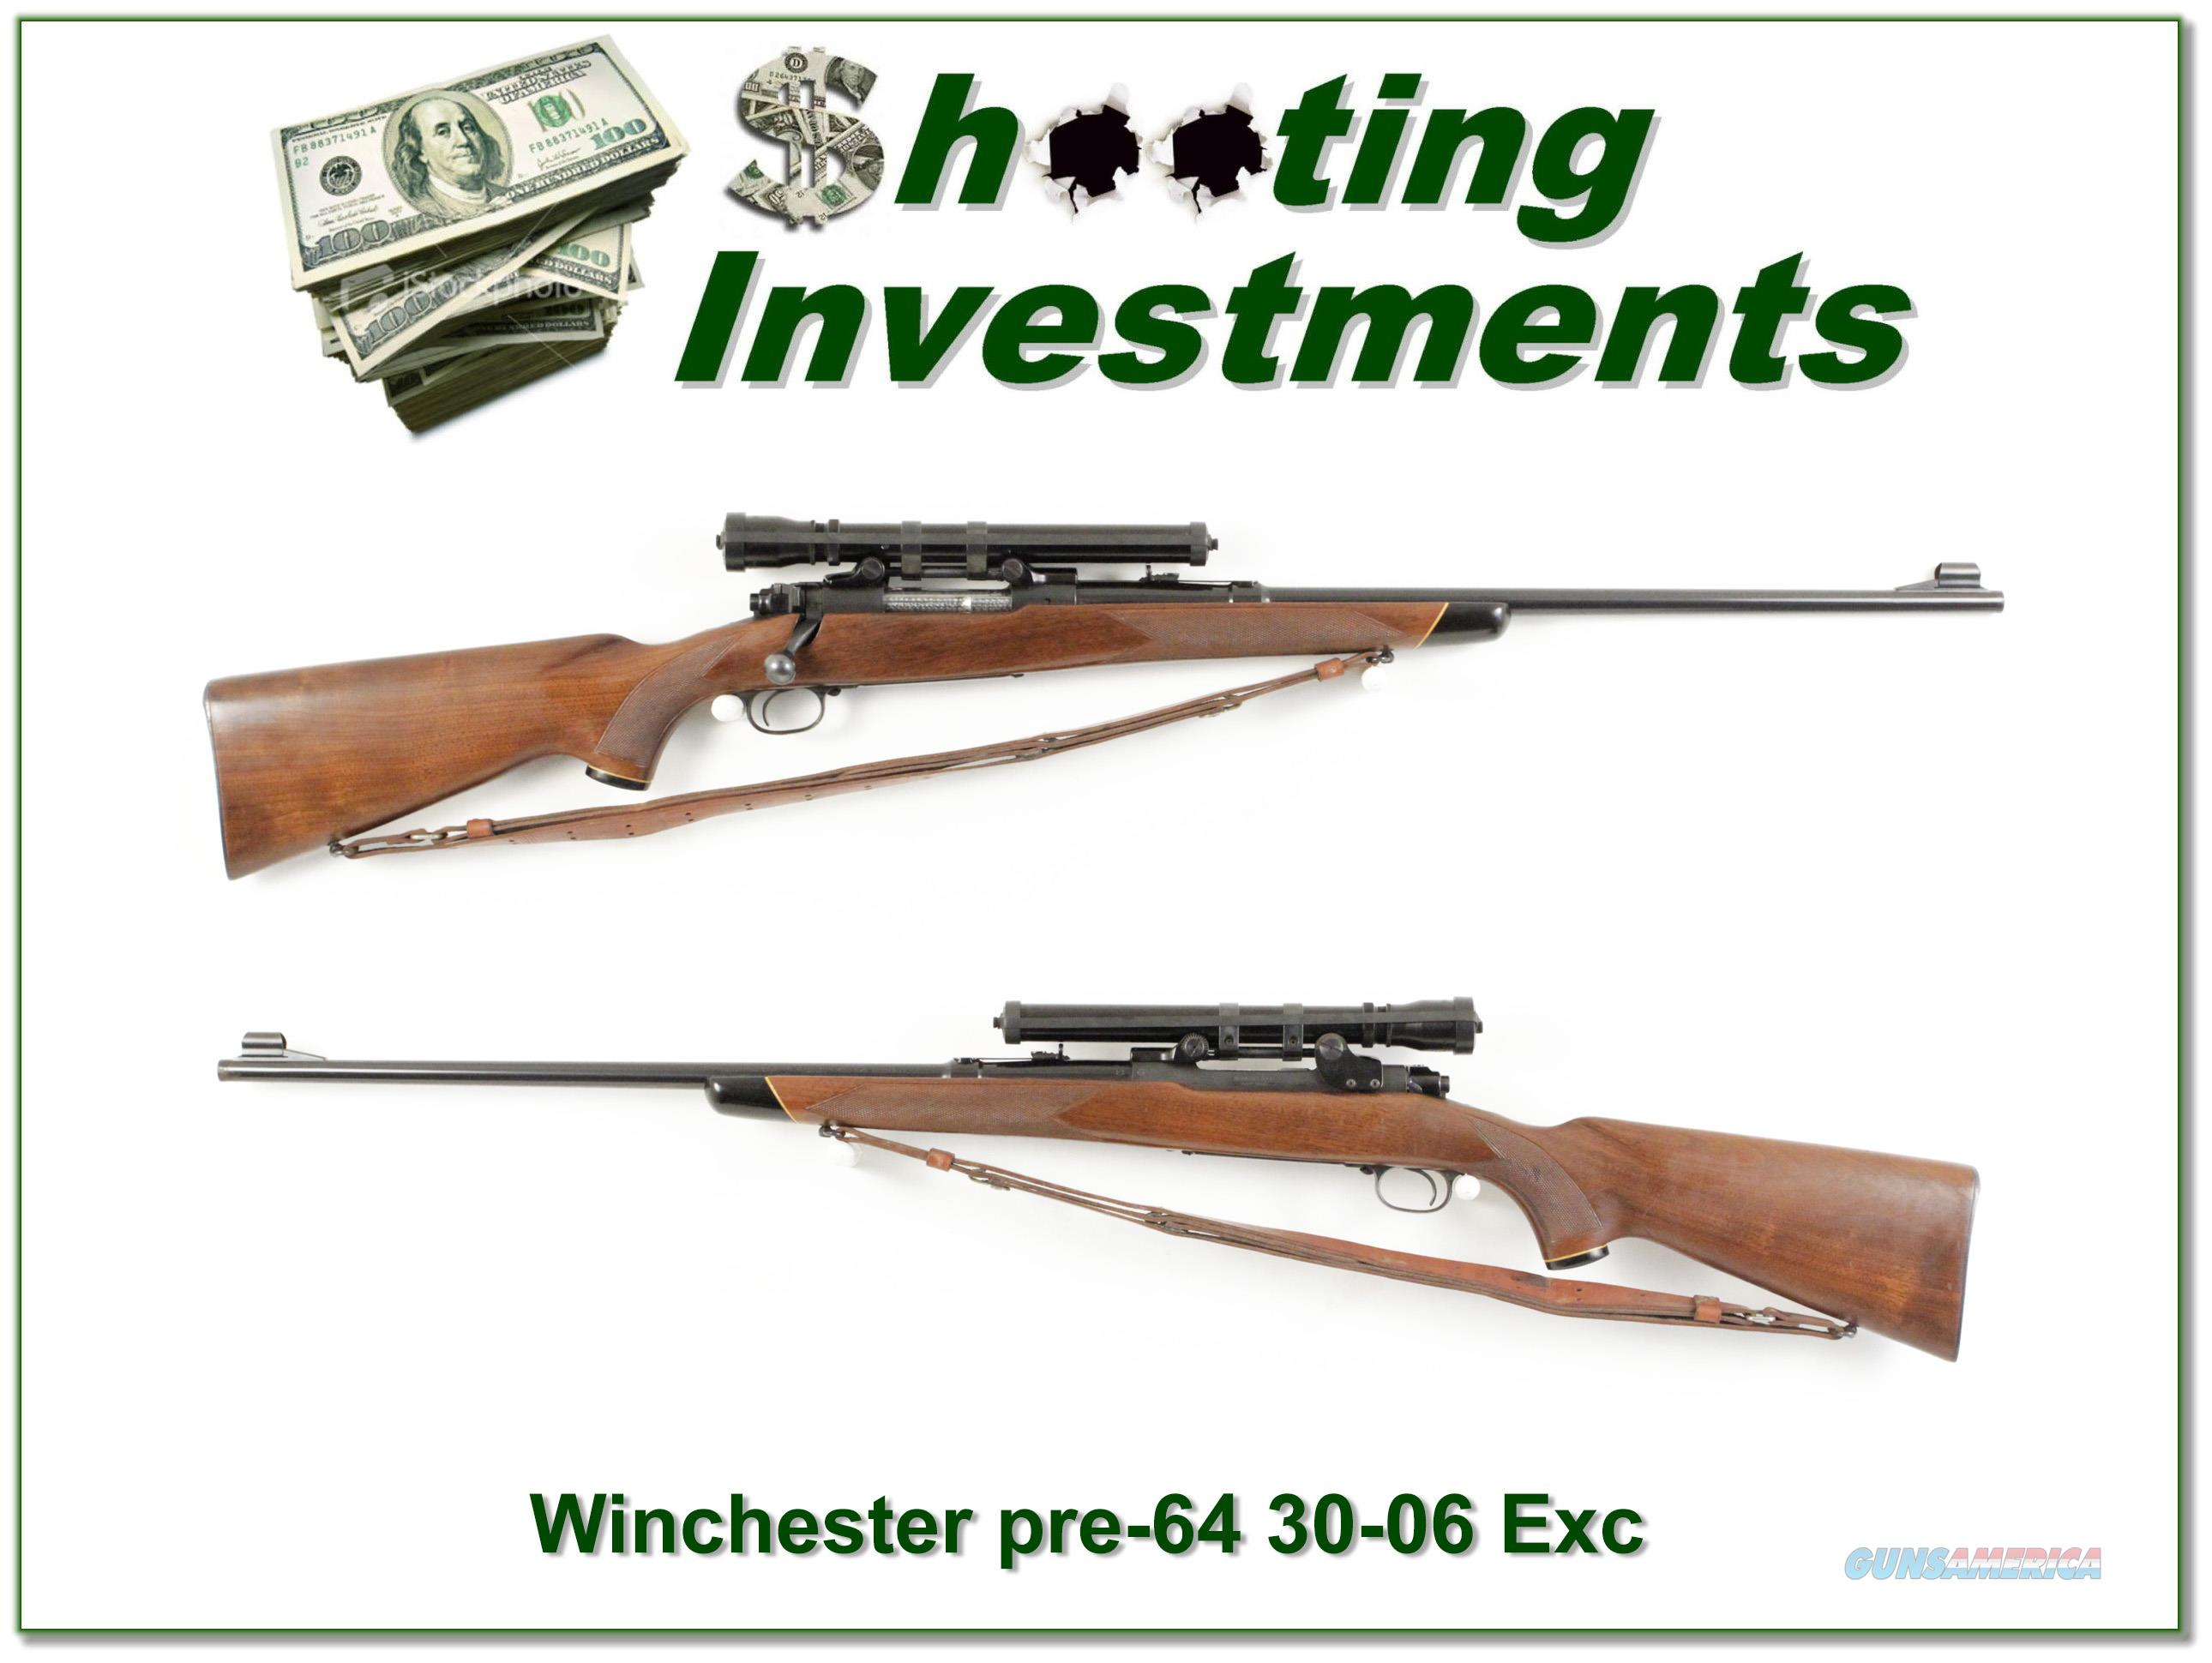 Winchester Model 70 pre-64 30-06 one owner Exc Cond!  Guns > Rifles > Winchester Rifles - Modern Bolt/Auto/Single > Model 70 > Pre-64